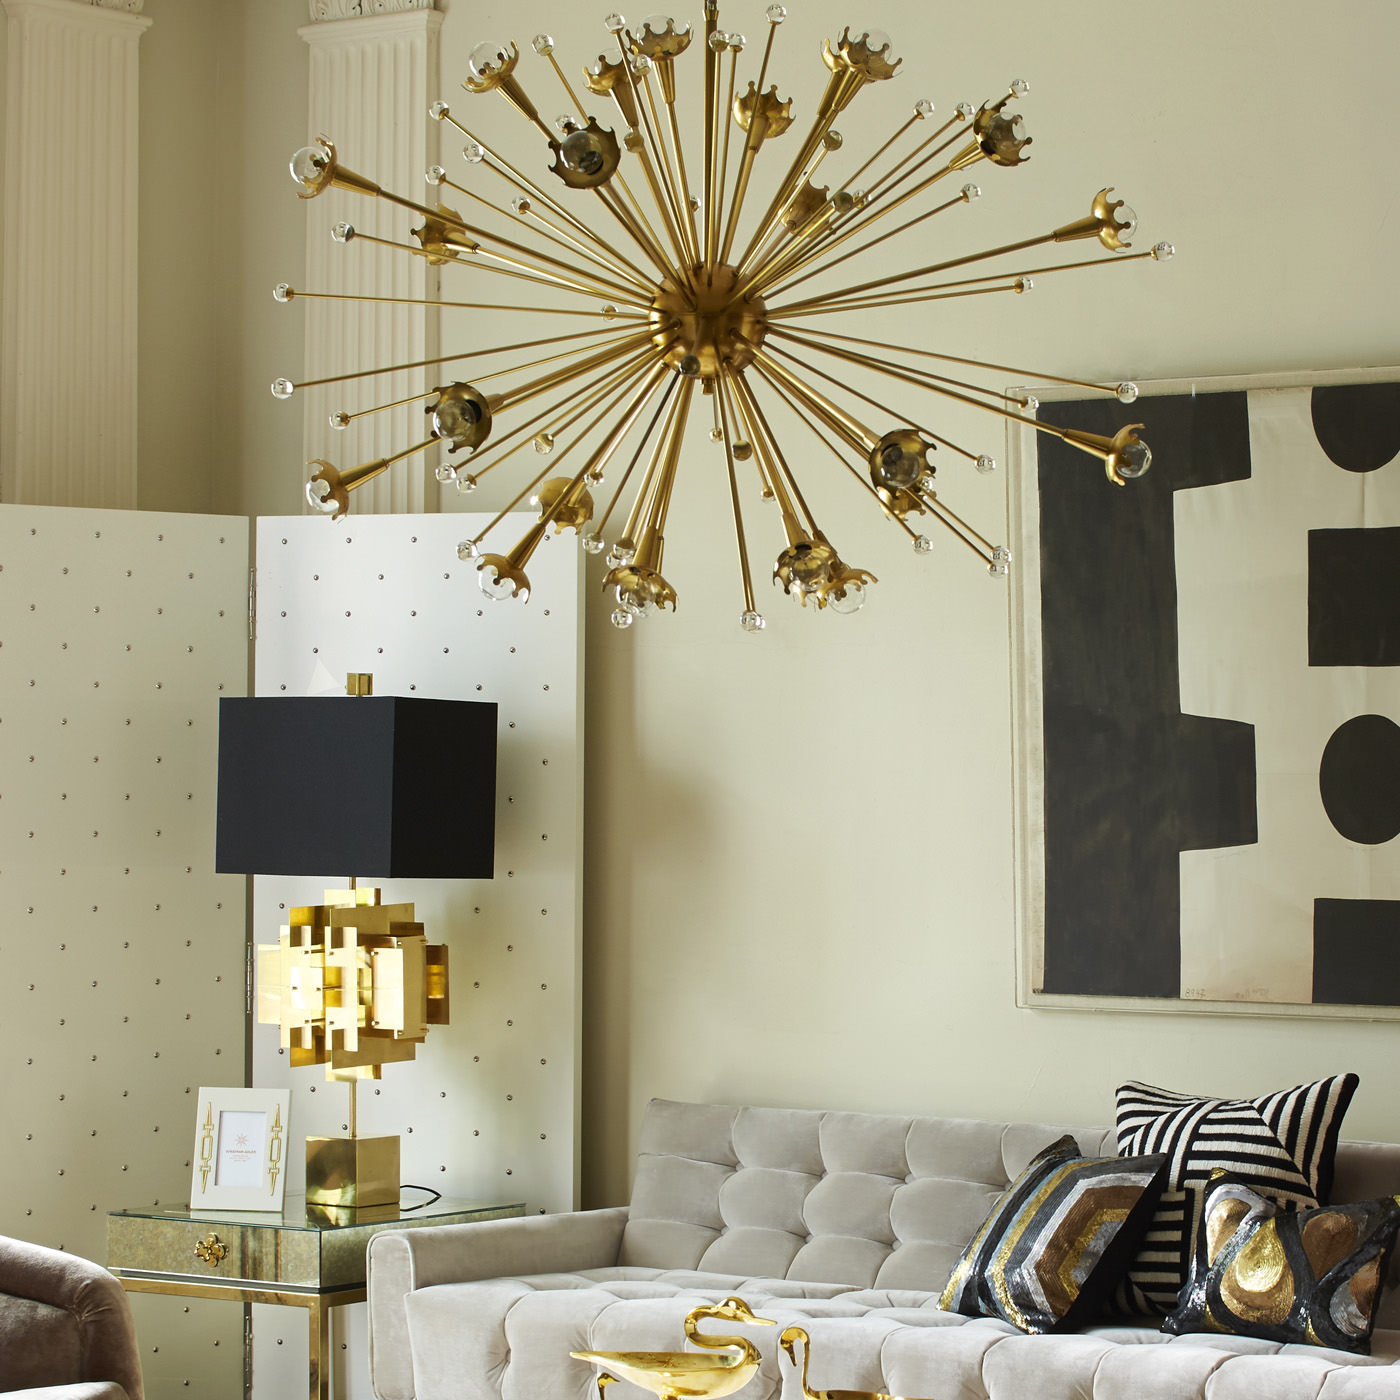 http://www.luxxu.net/blog/wp-content/uploads/2015/12/luxury-light-fixtures-with-sputnik-chandelier-for-living-room-and-tufted-sofa-plus-unique-table-lamp-fresh-sputnik-chandelier-for-charismatic-modern-lights-fixture-huge-stilnovo.jpg